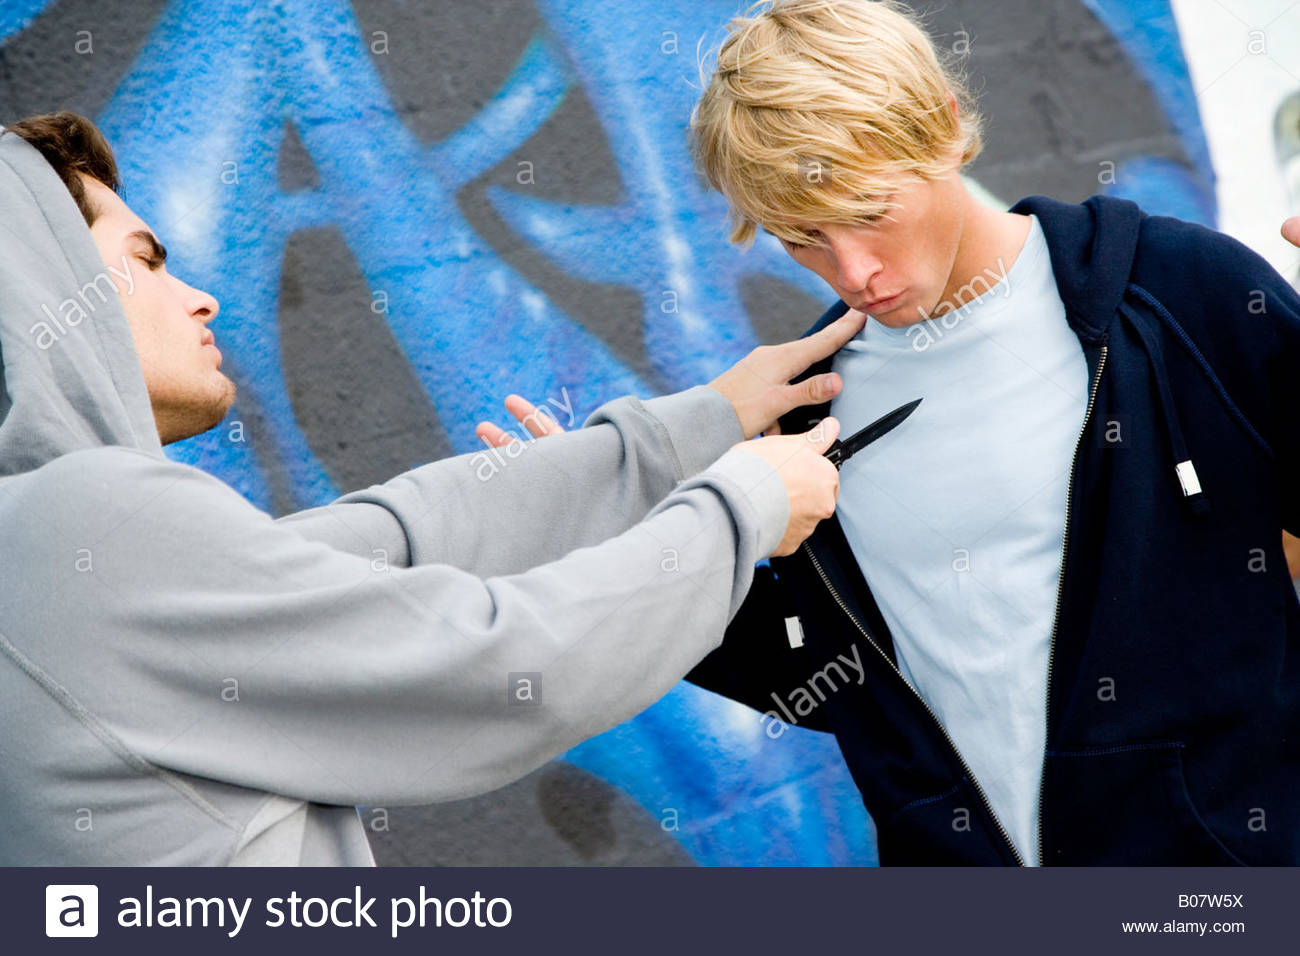 Confrontation between two young men and a group of friends in front of a graffiti covered wall Stock Photo